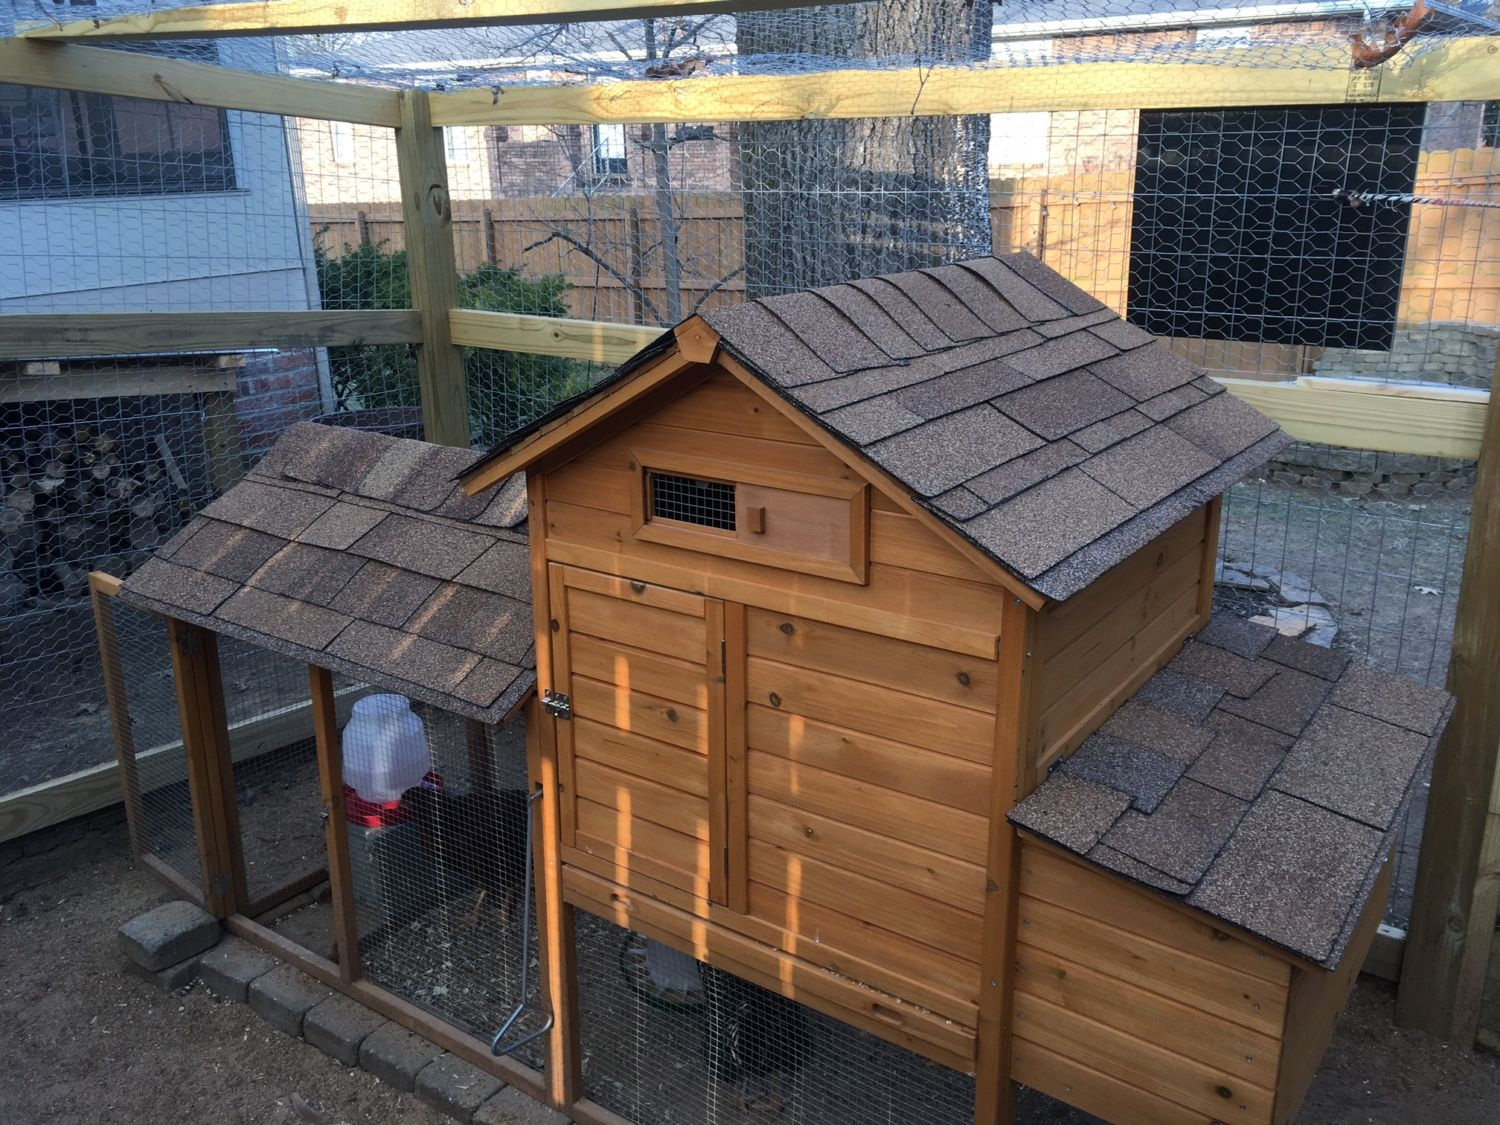 An upgrade was made to our pre-fab coop. I had extra shingles left over from a real roofing job and decided to fancy up the place.